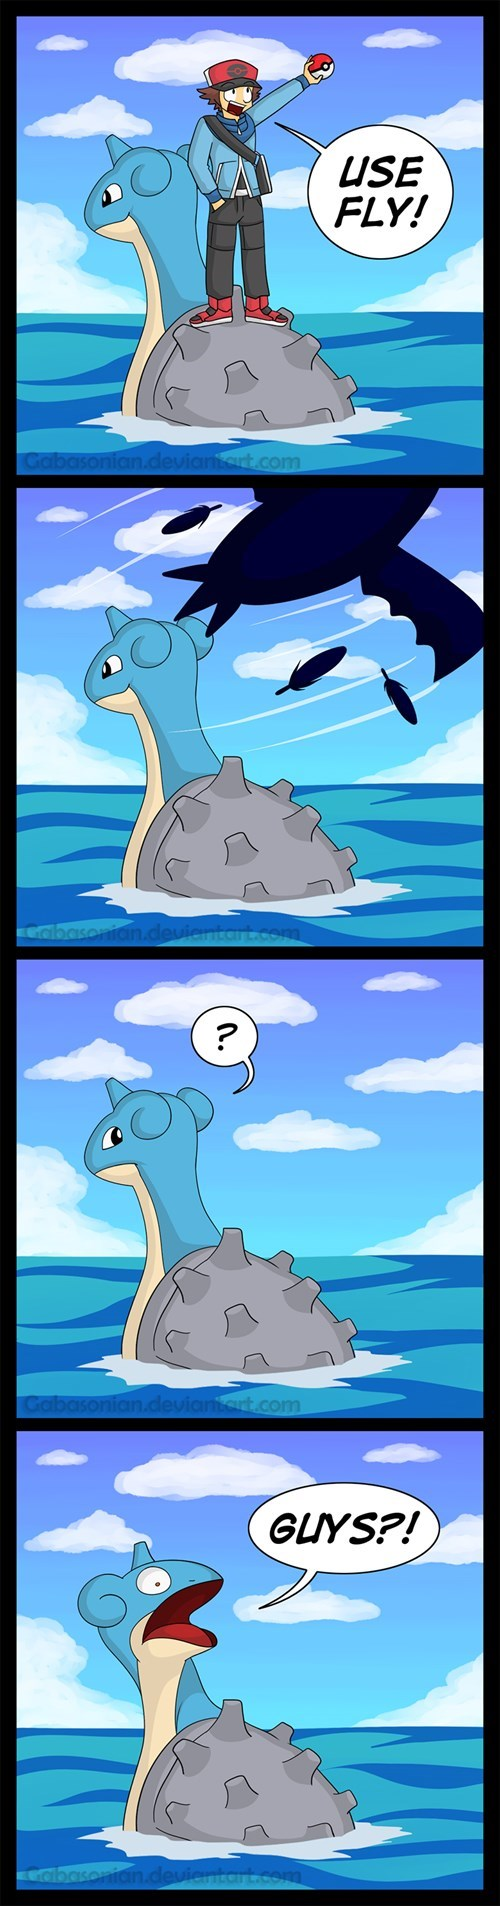 fly,lapras,Pokémon,surf,Sad